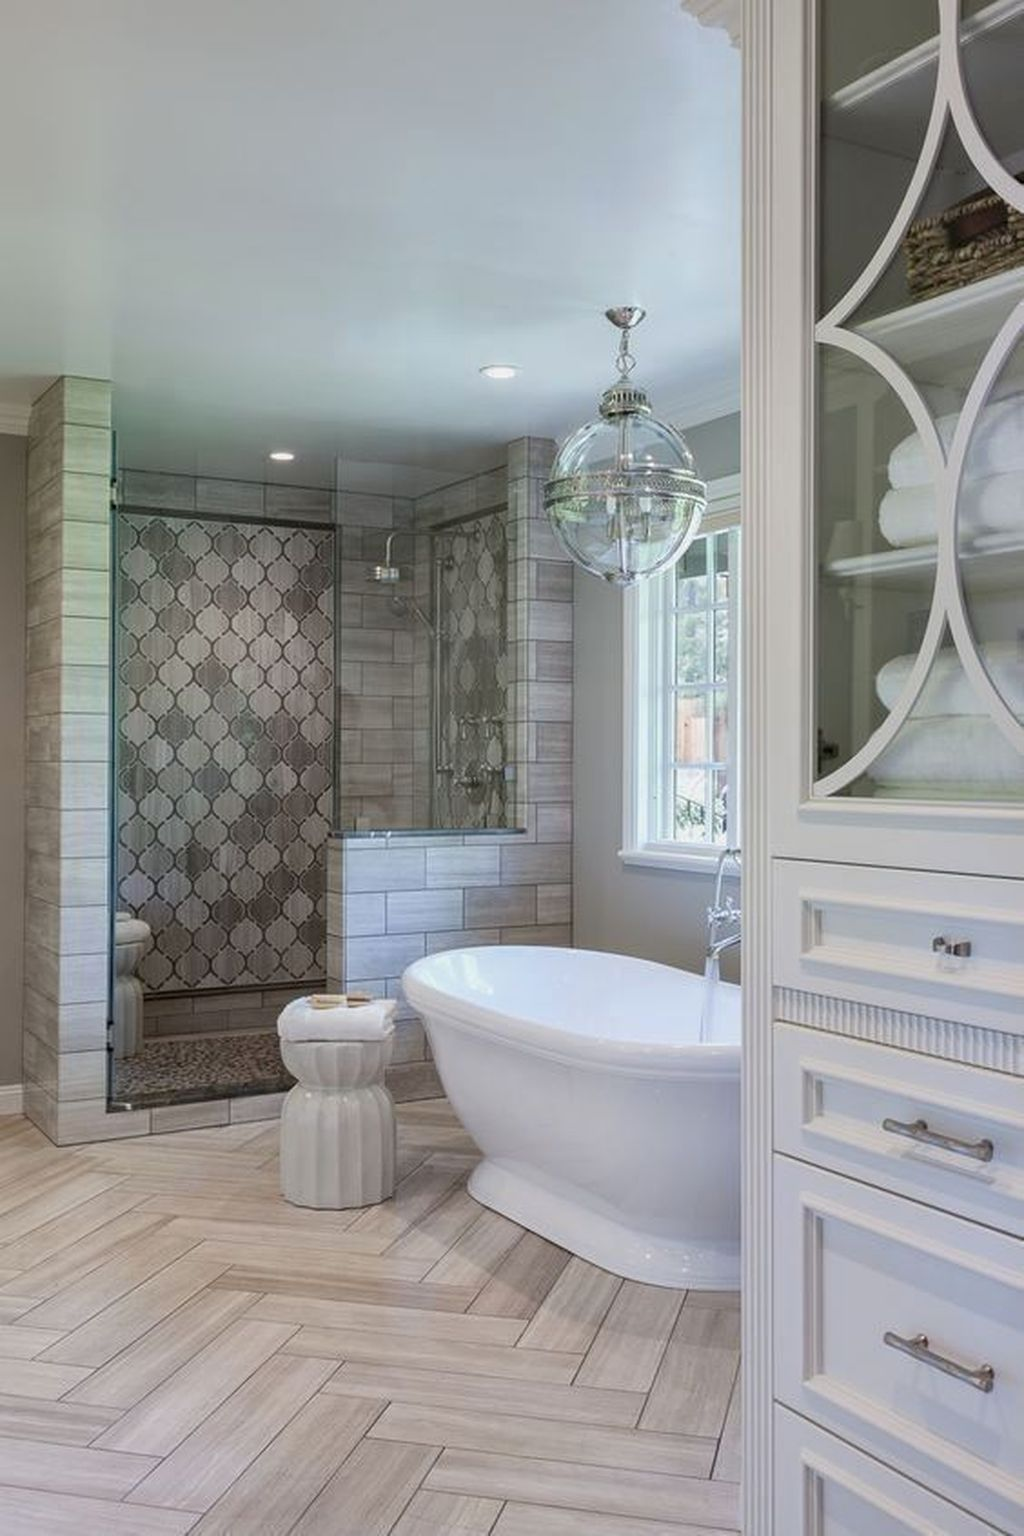 Awesome Small Bathroom Remodel Ideas On A Budget 10